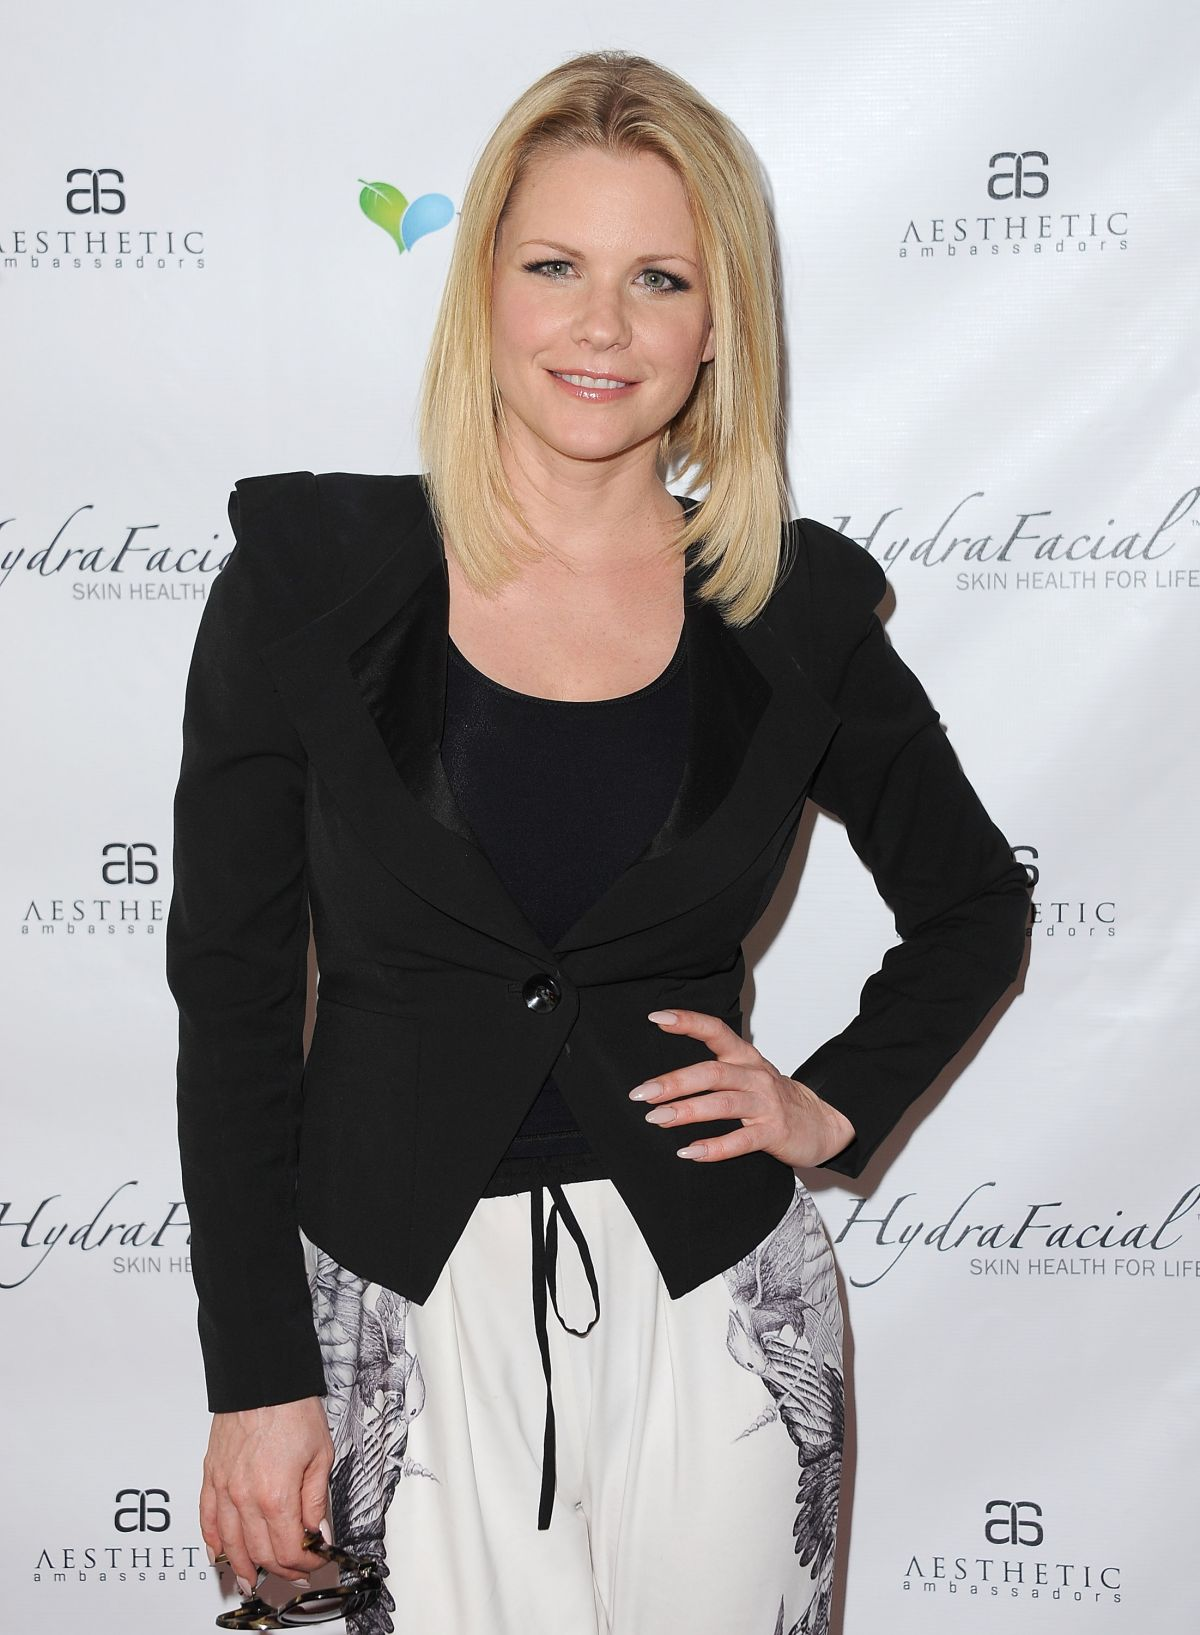 Carrie Keagan At SPLASH Media Event by Live Love Spa